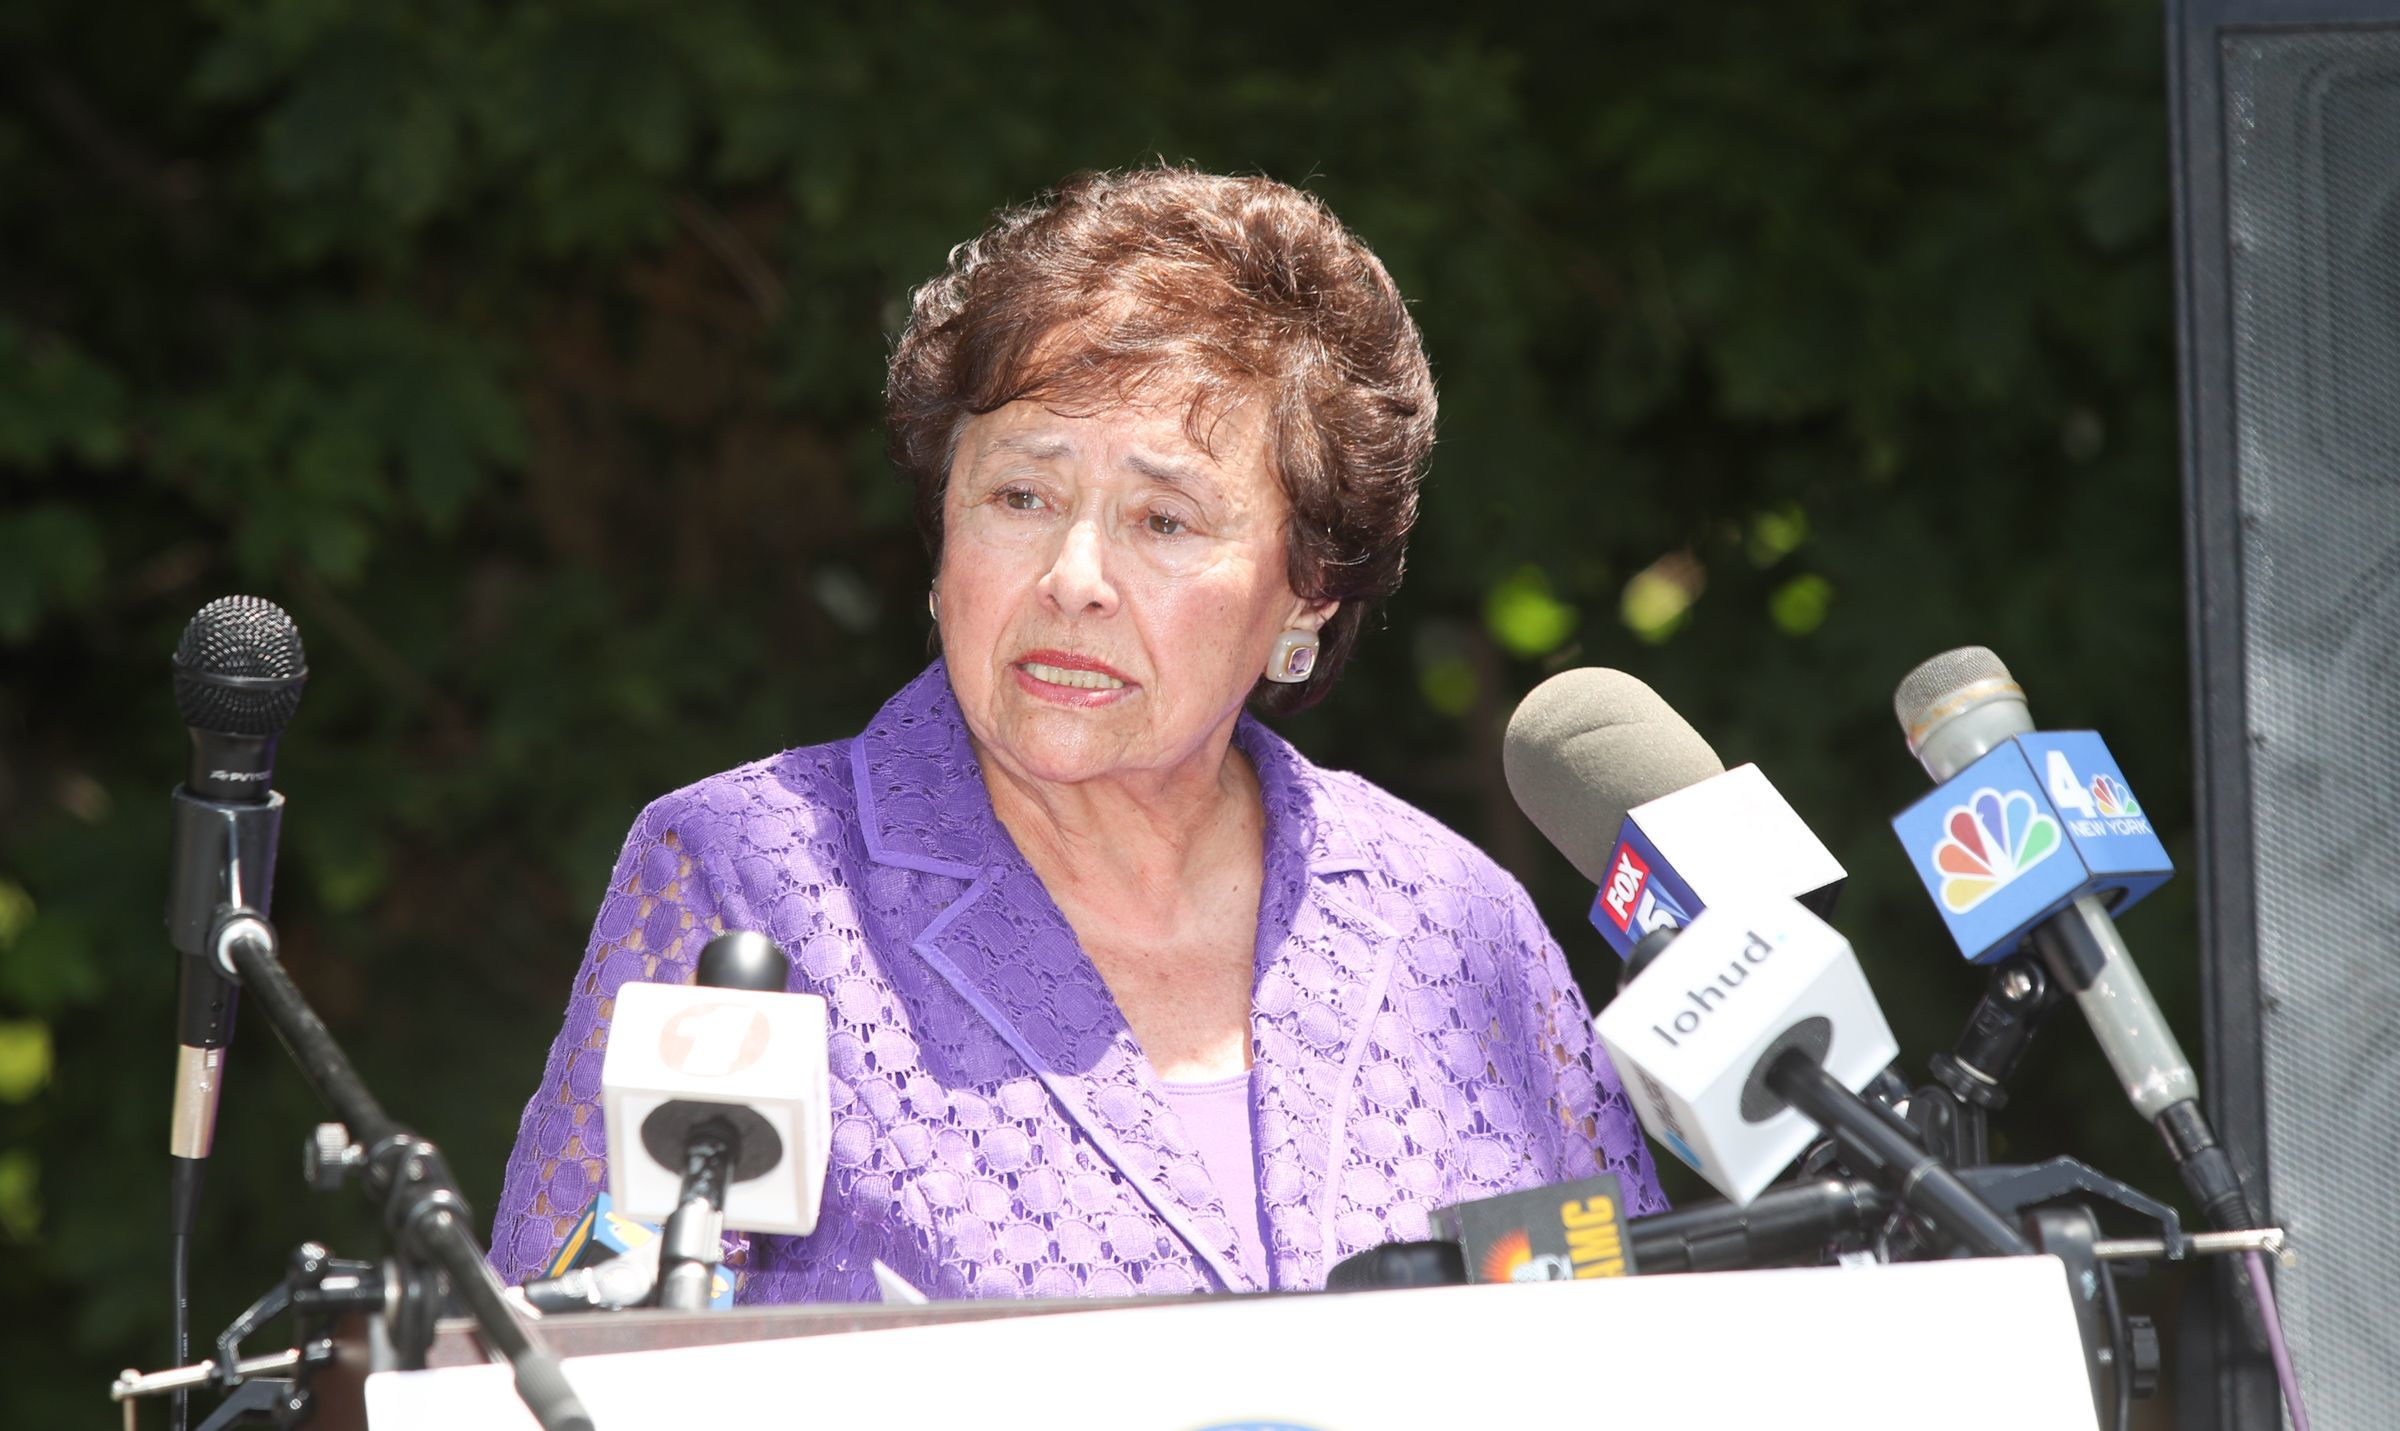 Congresswoman Nita Lowey holds a press conference after touring Children's Village in Dobbs Ferry on Friday, June 29, 2018.